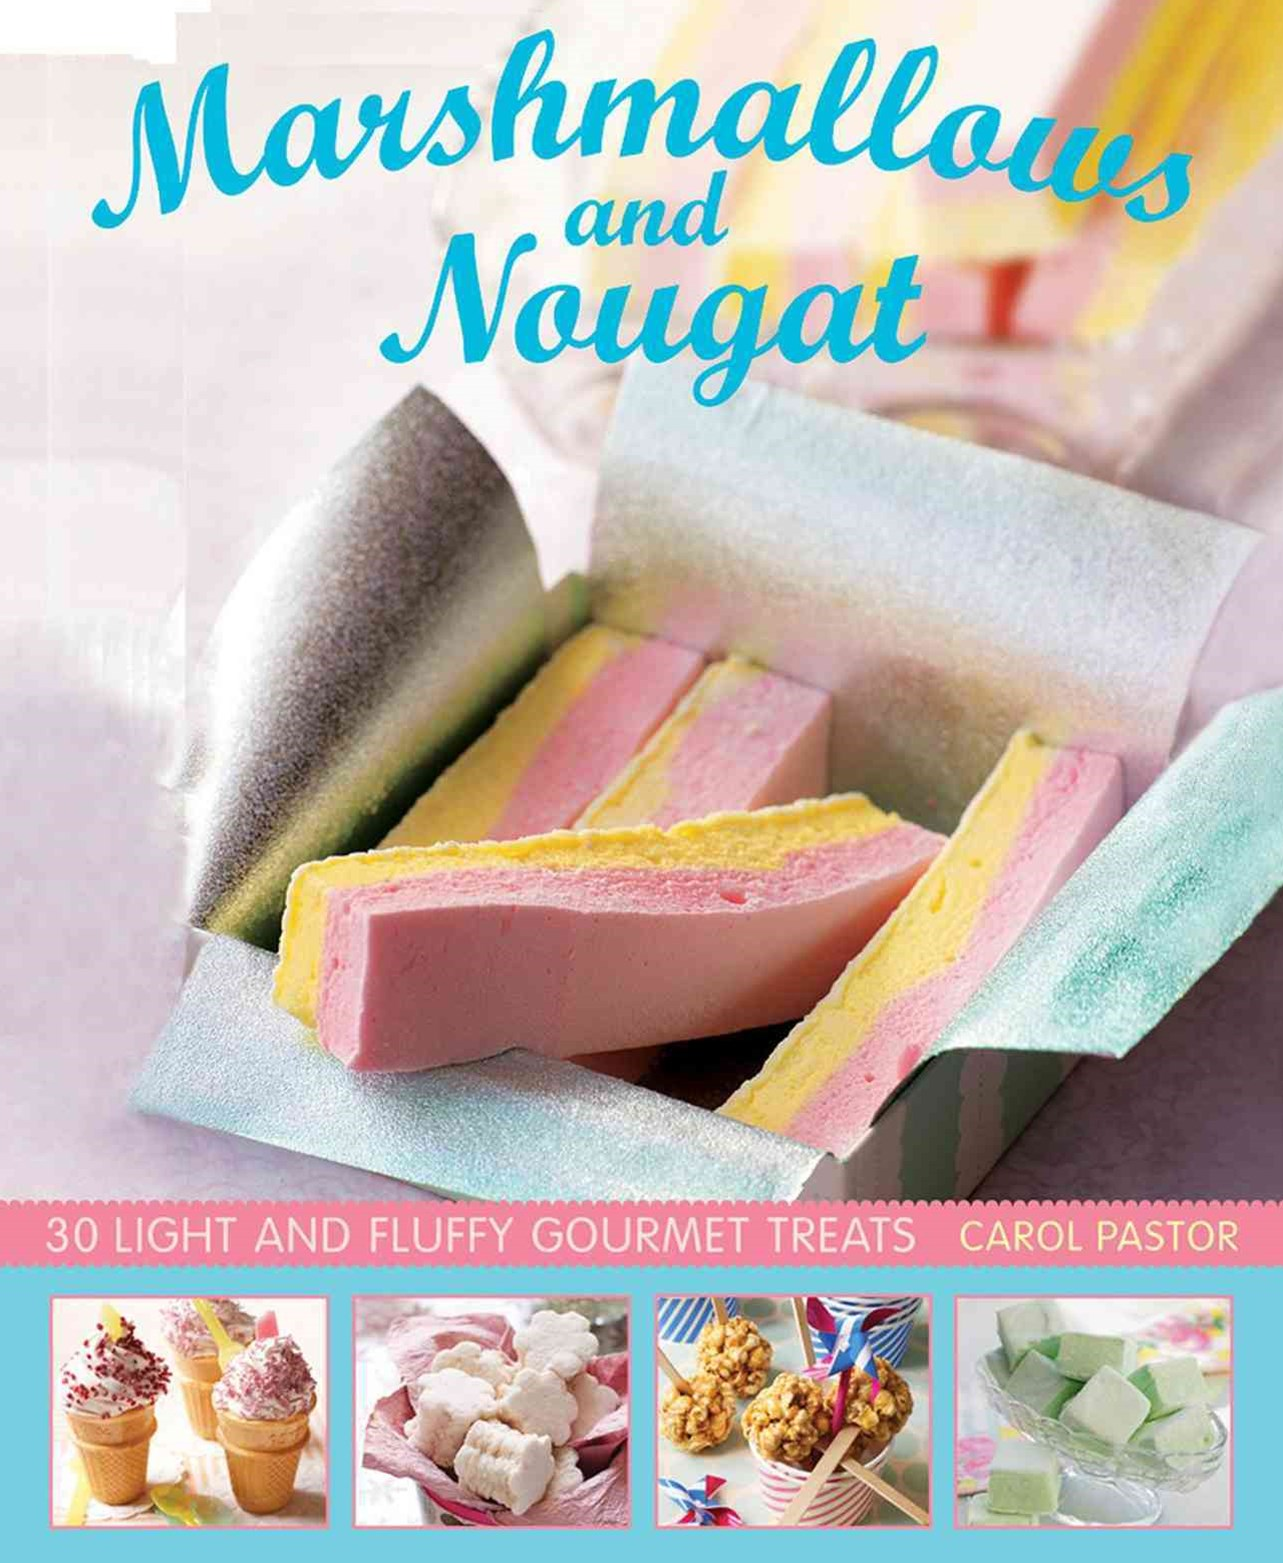 Marshmallows and Nougat